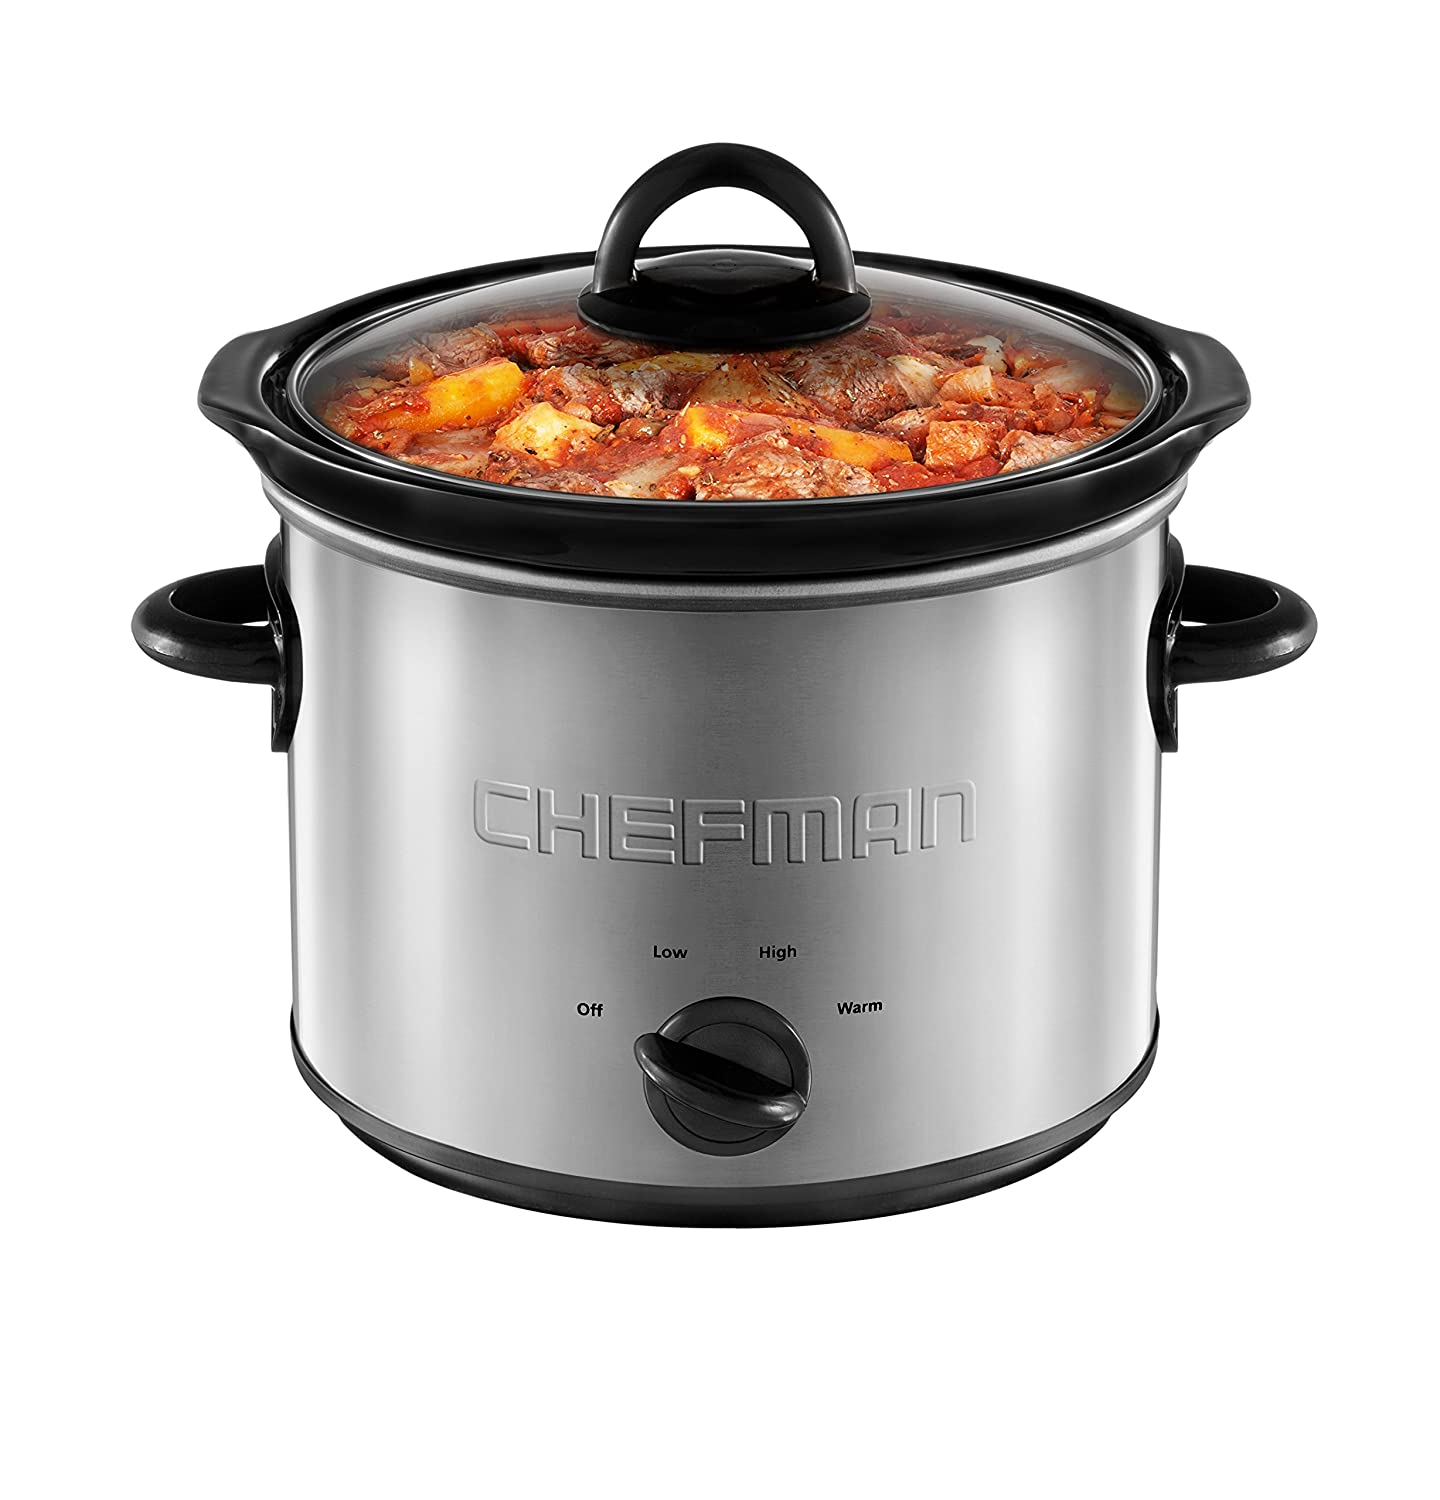 Chefman Slow Cookers - 3Qt & 6Qt (3 Quart)